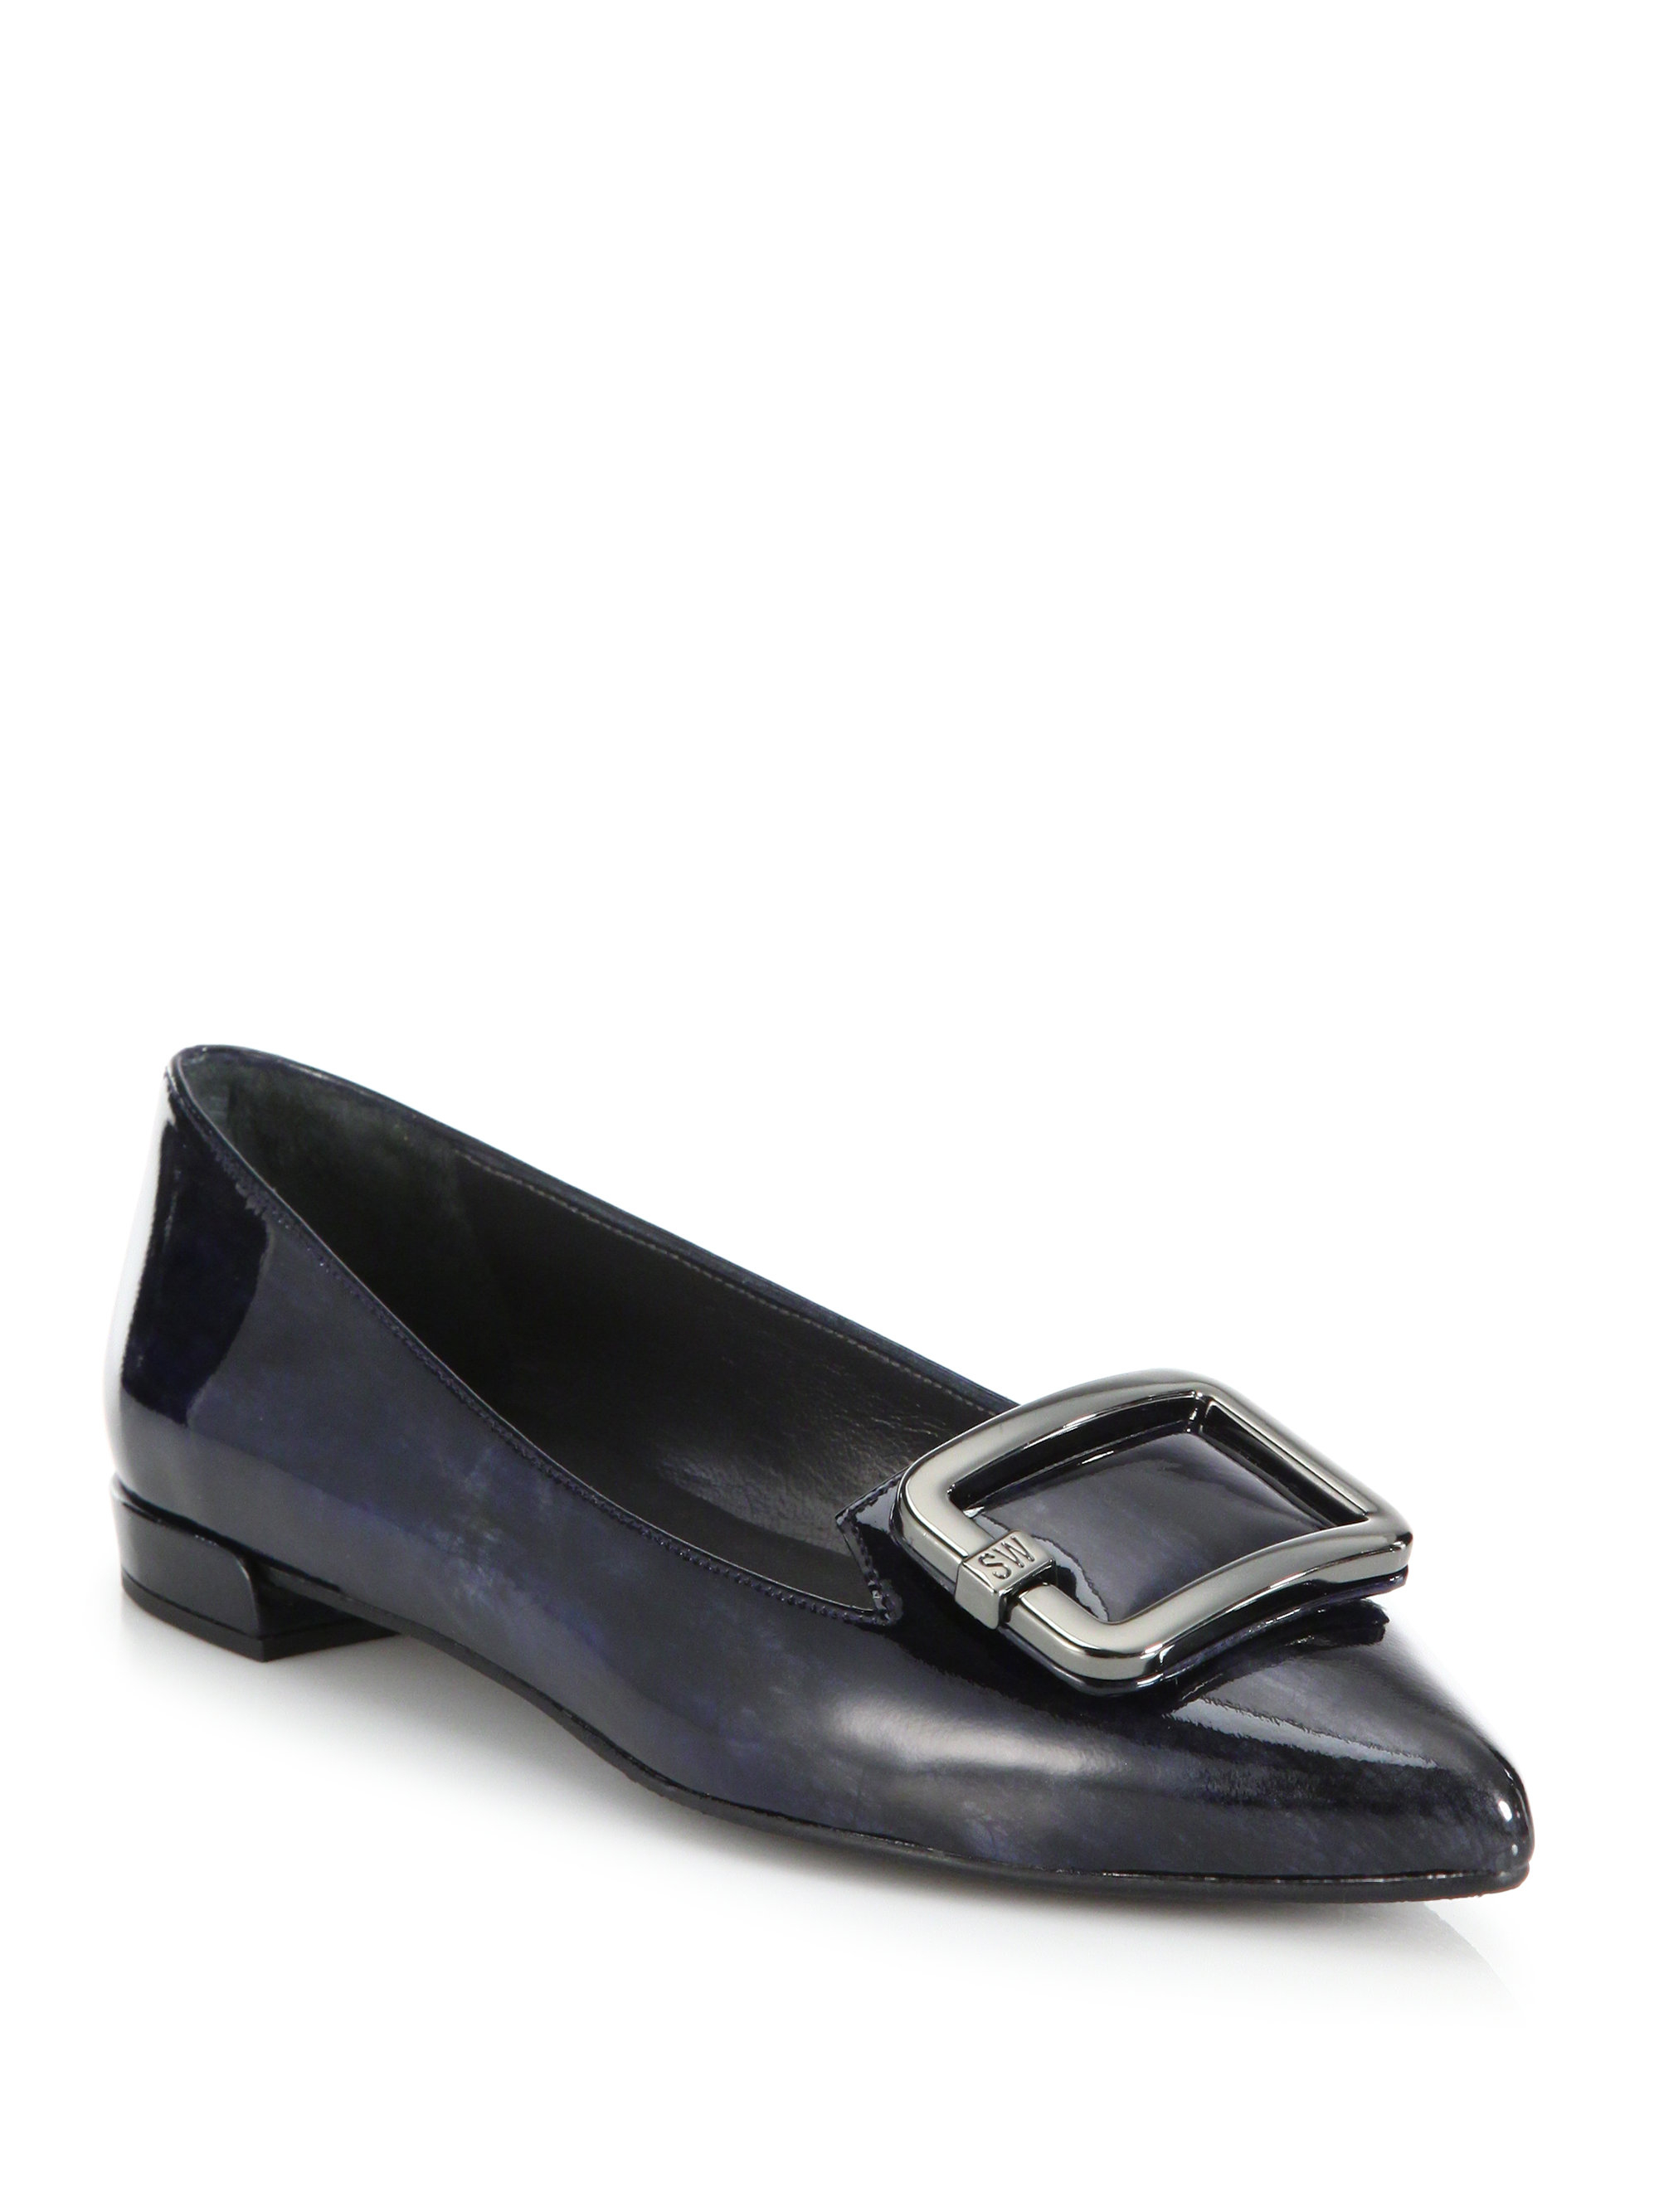 Navy Blue Patent Leather Shoes